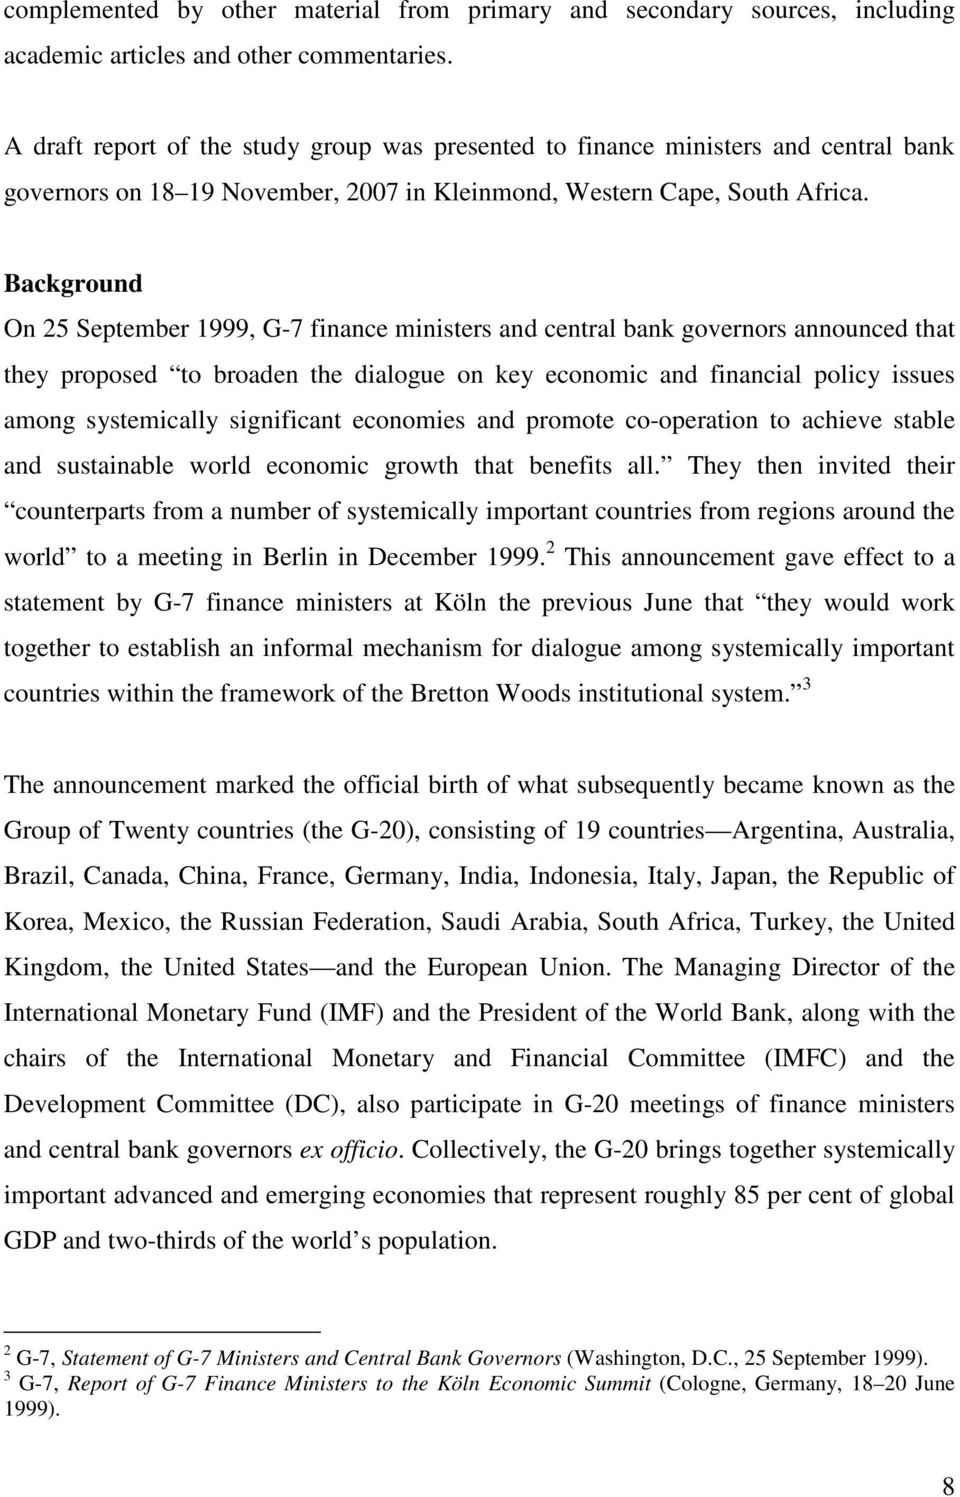 Background On 25 September 1999, G-7 finance ministers and central bank governors announced that they proposed to broaden the dialogue on key economic and financial policy issues among systemically